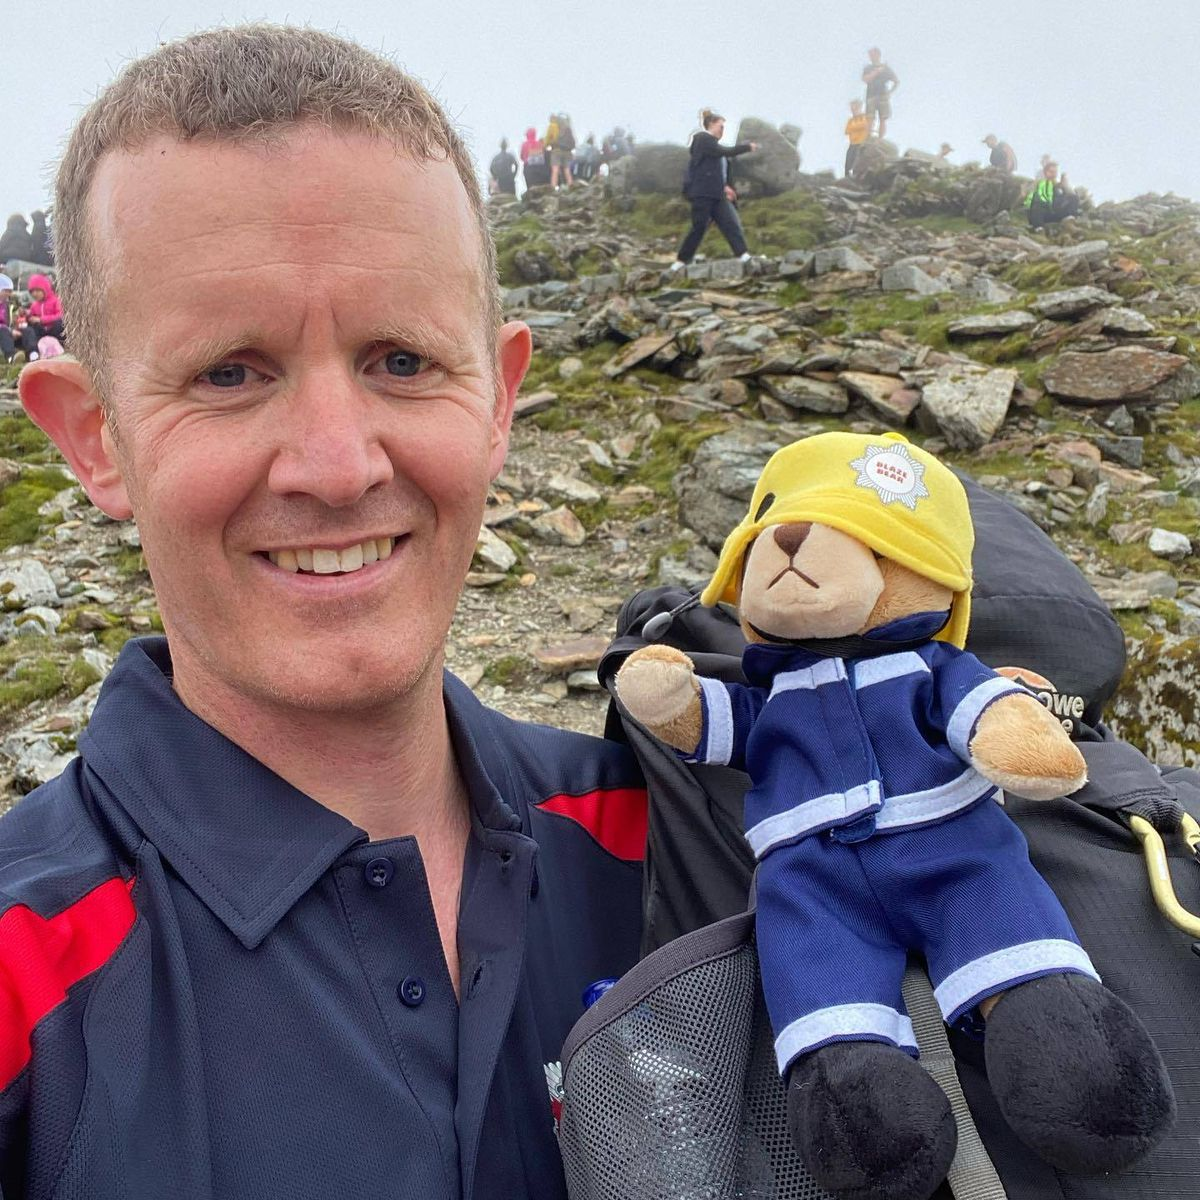 Dave Latham at the summit with a mascot